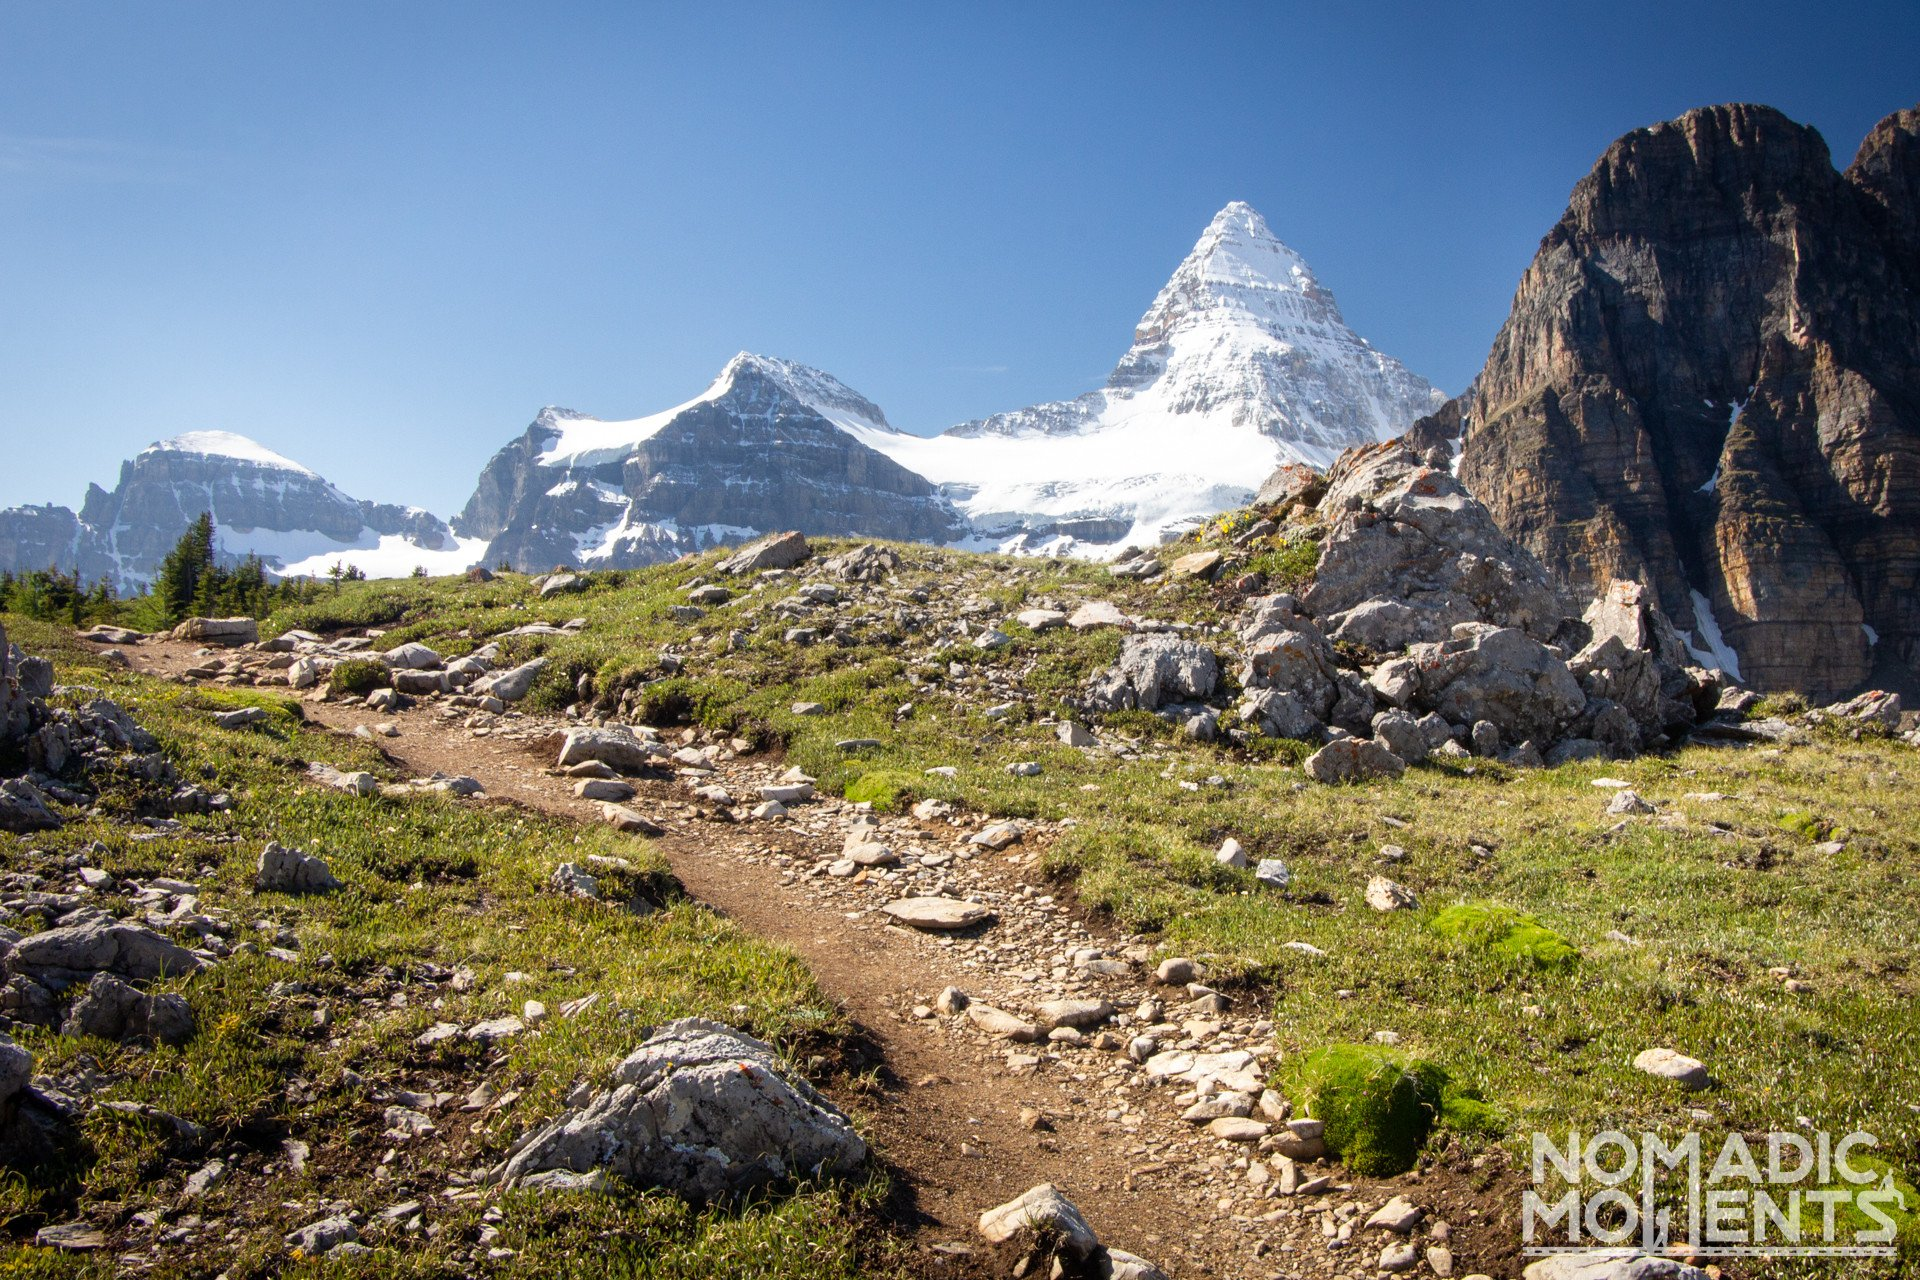 Trail Guide to Mount Assiniboine